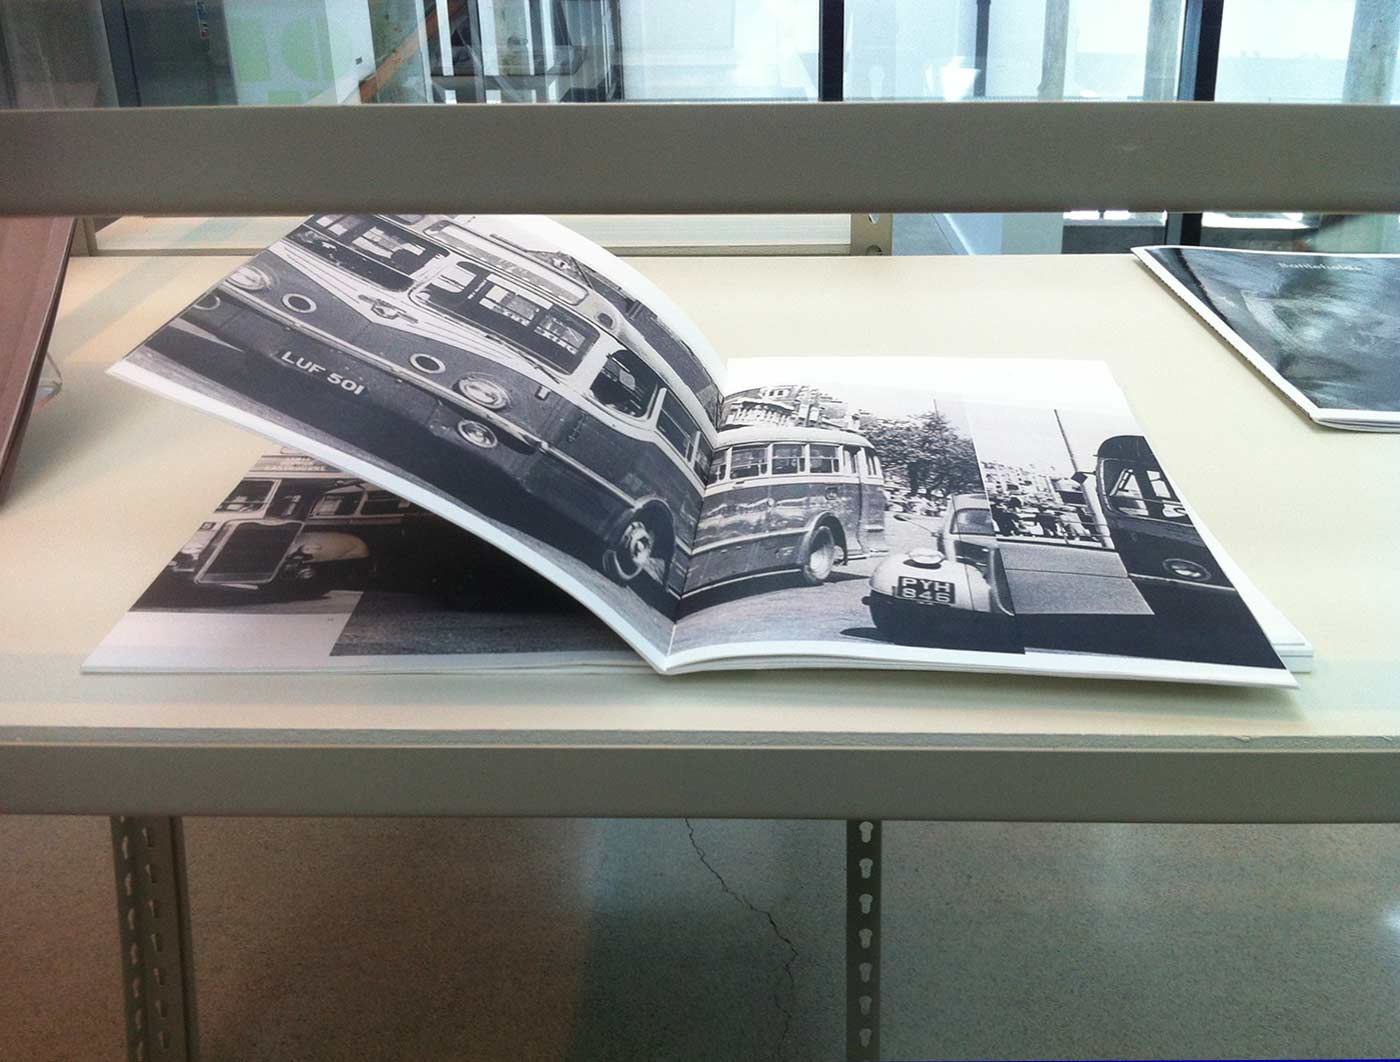 paula roush: bus-spotting + a story , exhibition views, KHIO LIBRARY, Oslo National Academy of the Arts, Oslo